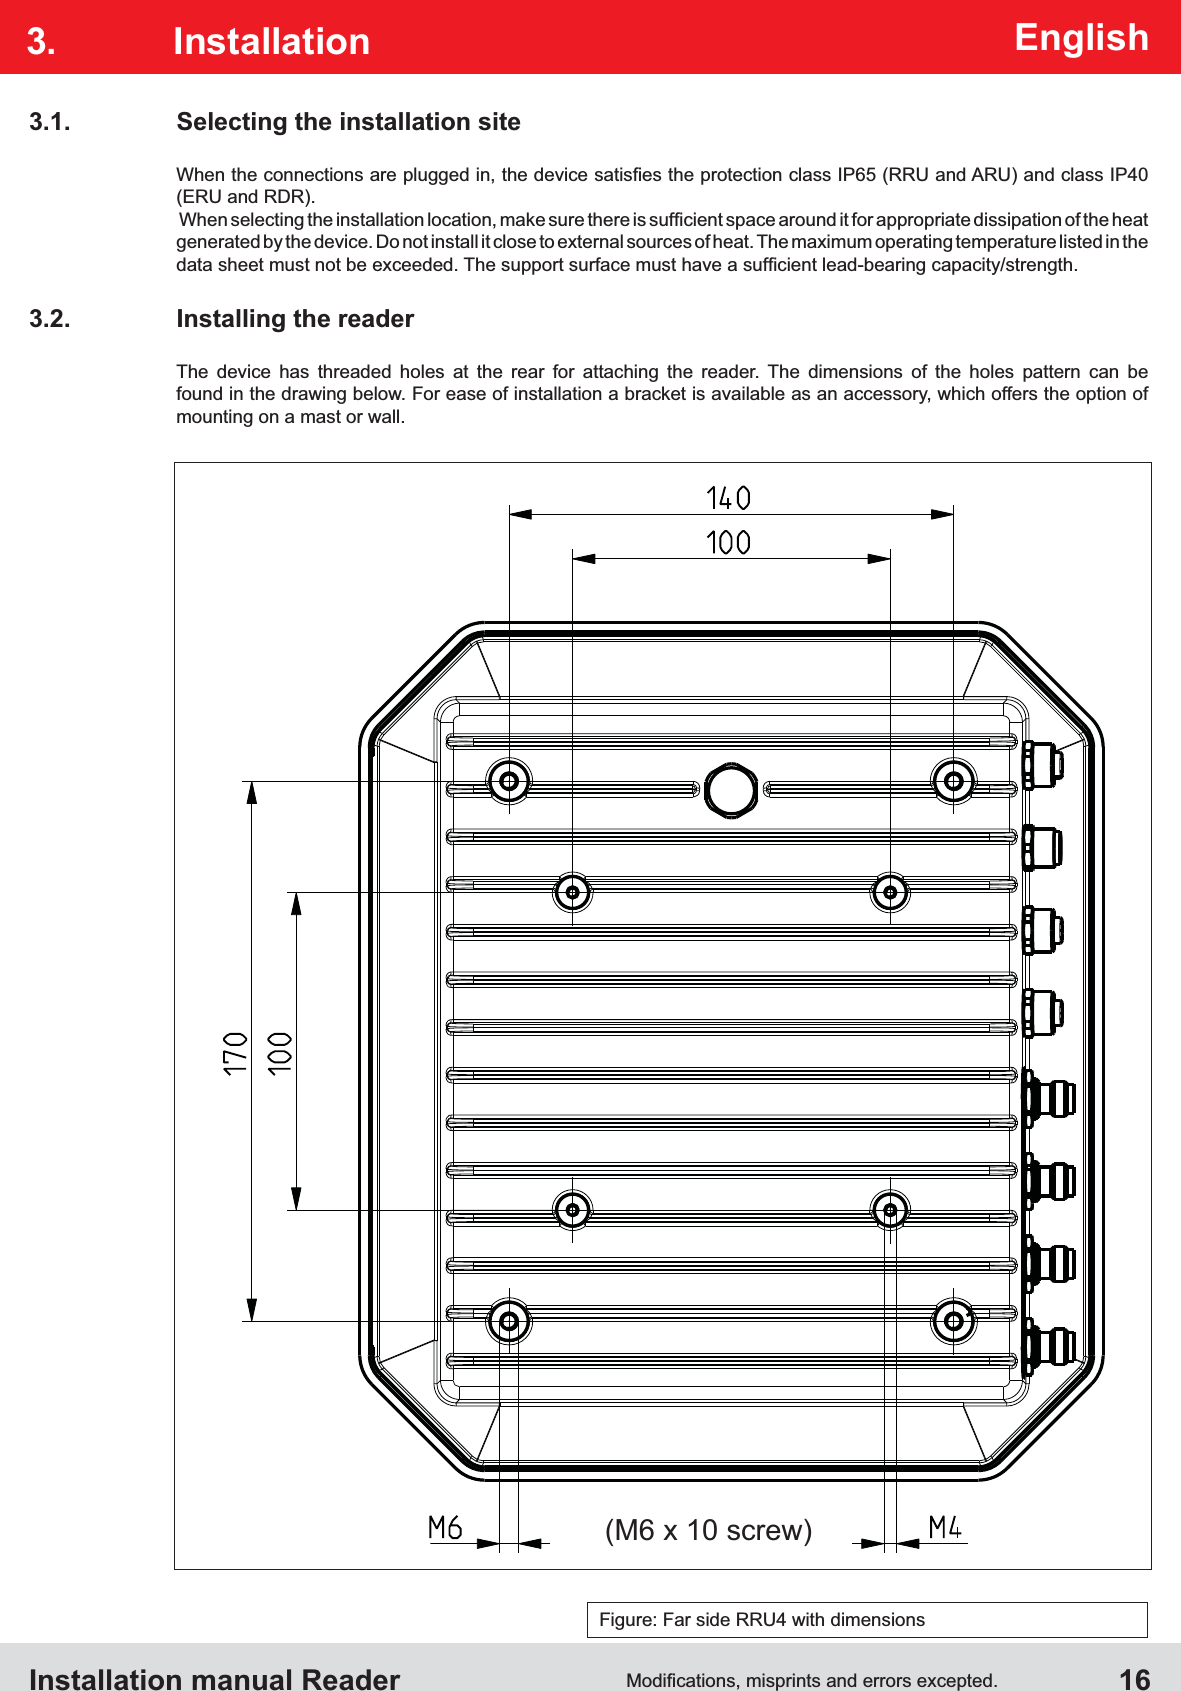 Installation manual Reader  16EnglishFigure: Far side RRU4 with dimensions(M6 x 10 screw)3.1.  Selecting the installation site(ERU and RDR).generated by the device. Do not install it close to external sources of heat. The maximum operating temperature listed in the  3.2.  Installing the readerThe device has threaded holes at the rear for attaching the reader. The dimensions of the holes pattern can be found in the drawing below. For ease of installation a bracket is available as an accessory, which offers the option of  mounting on a mast or wall.3. Installation